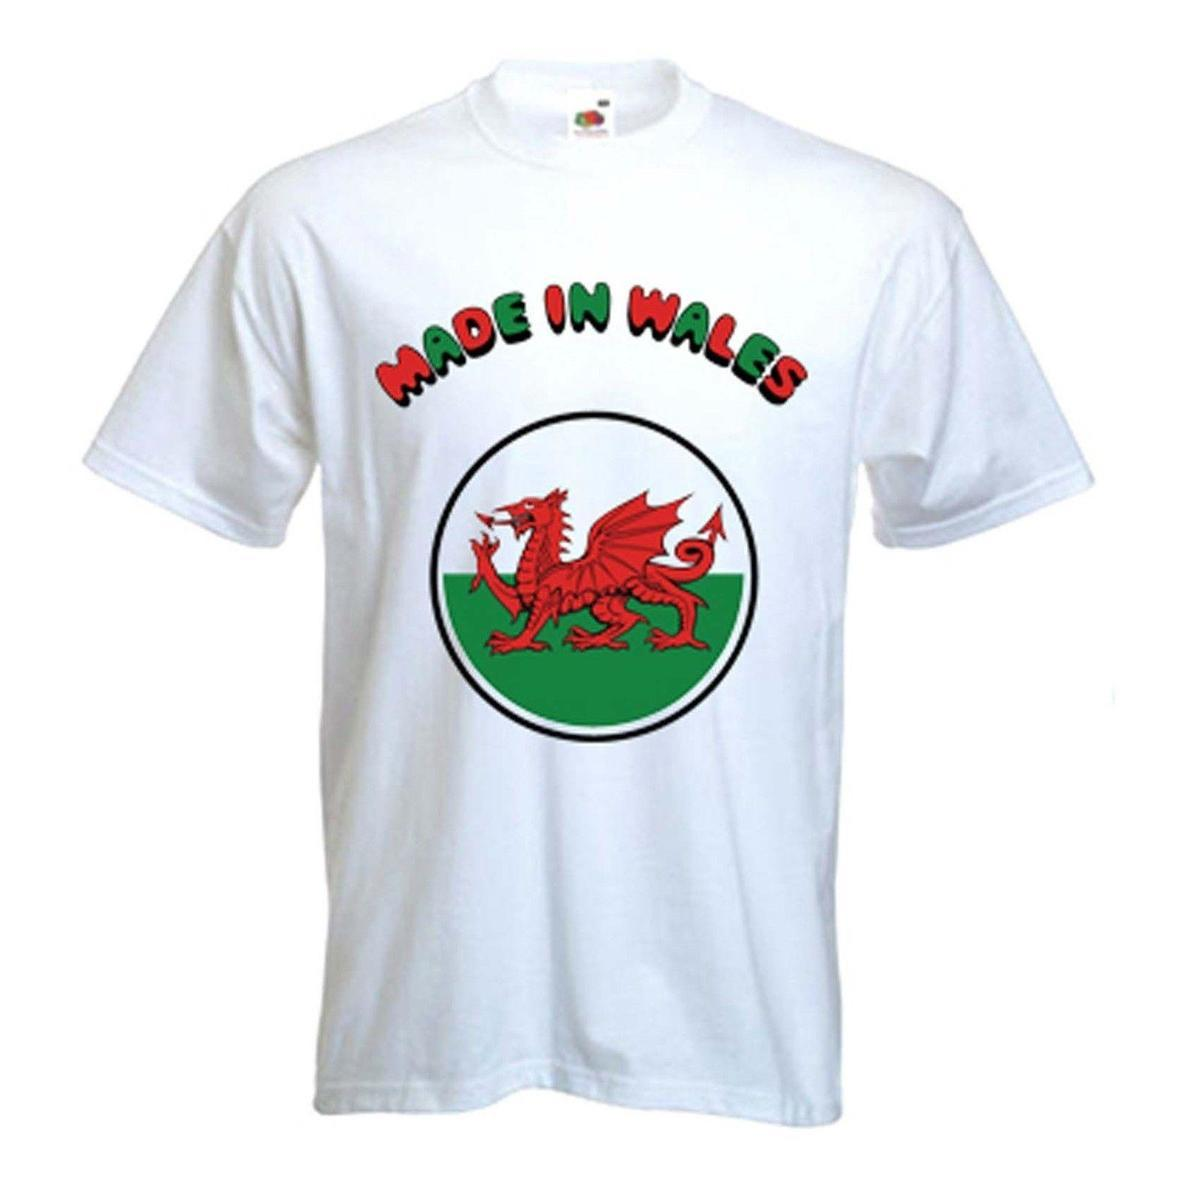 d8ee6223a35 MADE IN WALES WELSH DRAGON T SHIRT Cymru Rugby Sizes Small To XXXL Tees  Designs Find A Shirt From Lijian03, $12.08| DHgate.Com